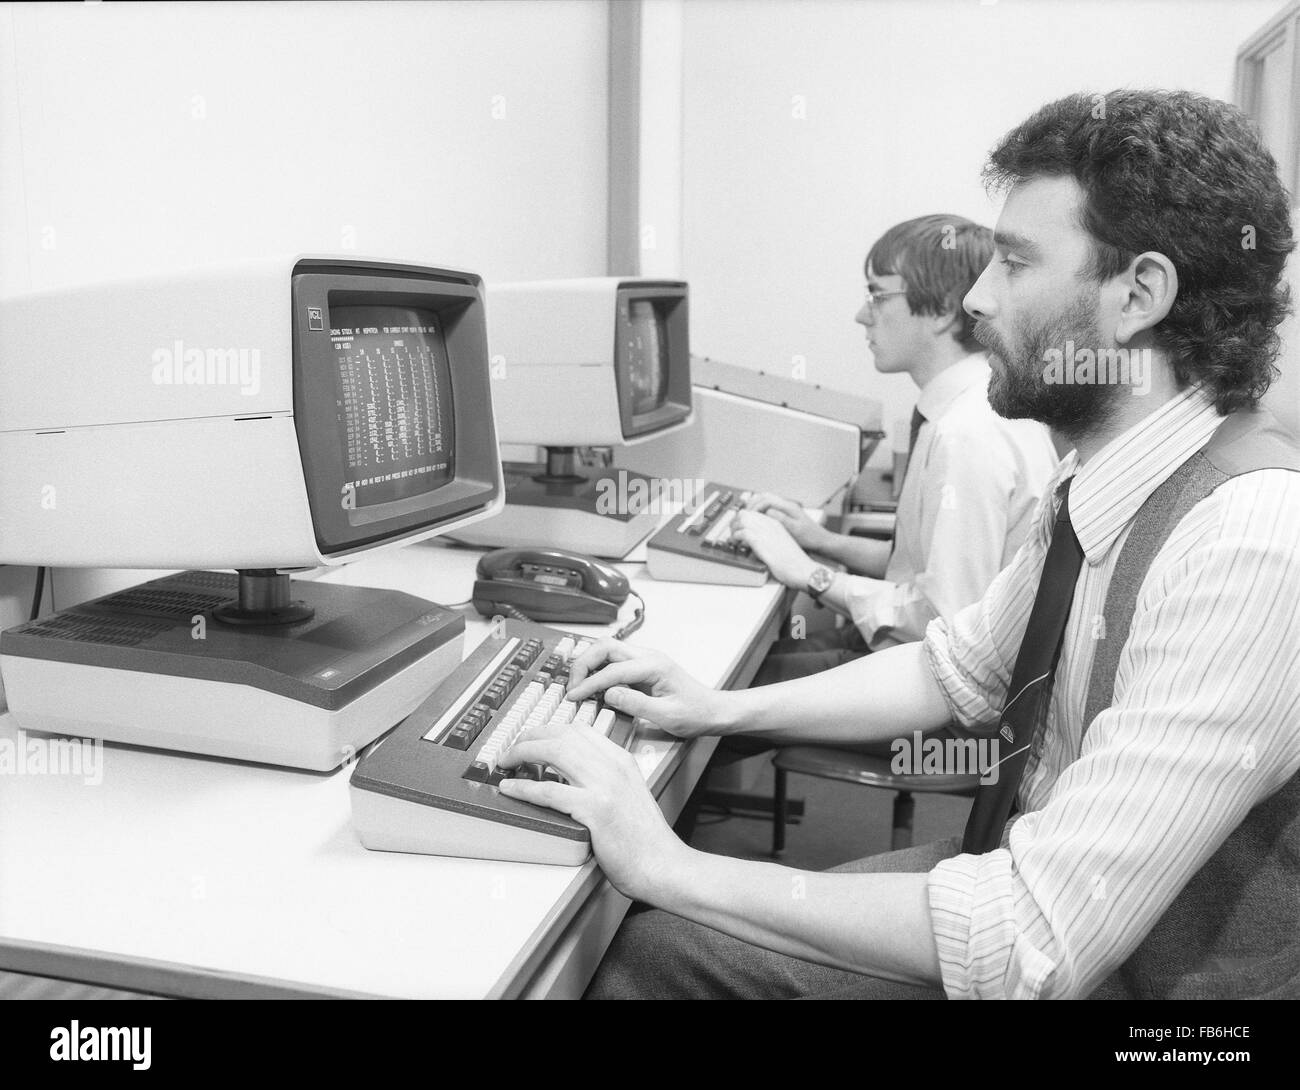 ICL 2900 Series mainframe computer installation and programmers at the Milk Marketing Board head office in Thames - Stock Image